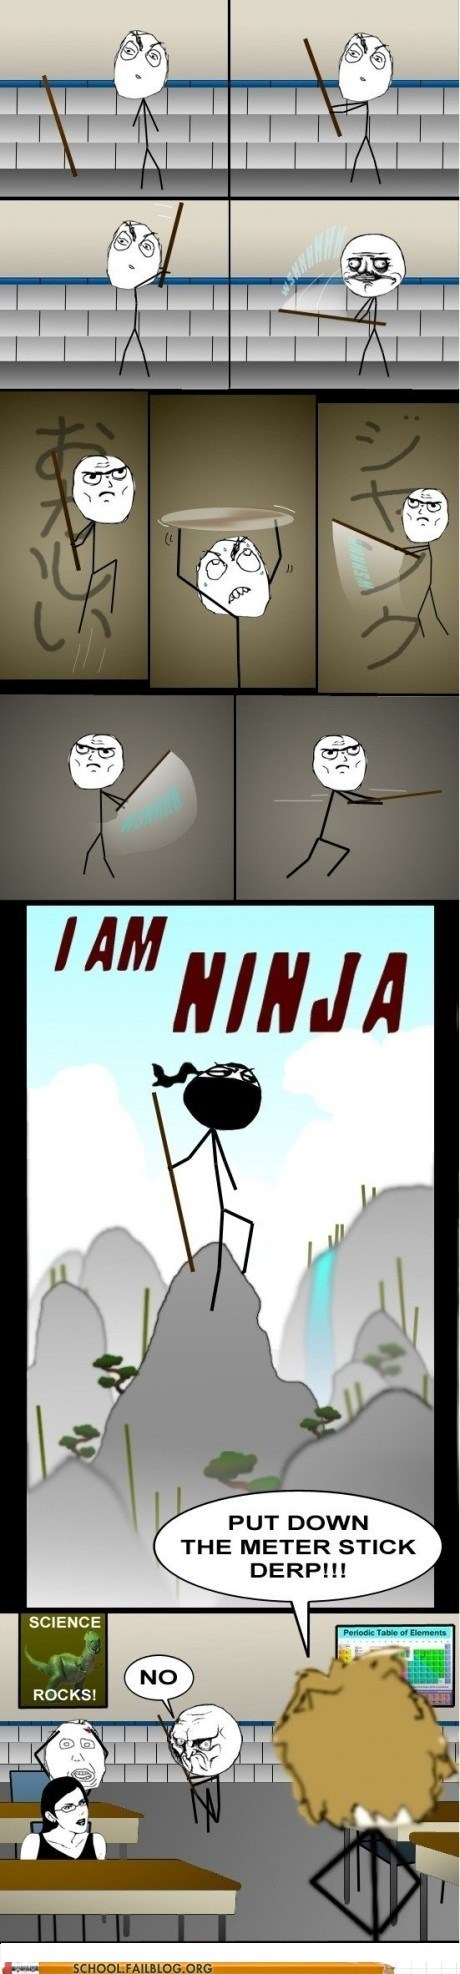 get away its-mine ninja samurai sword yard stick